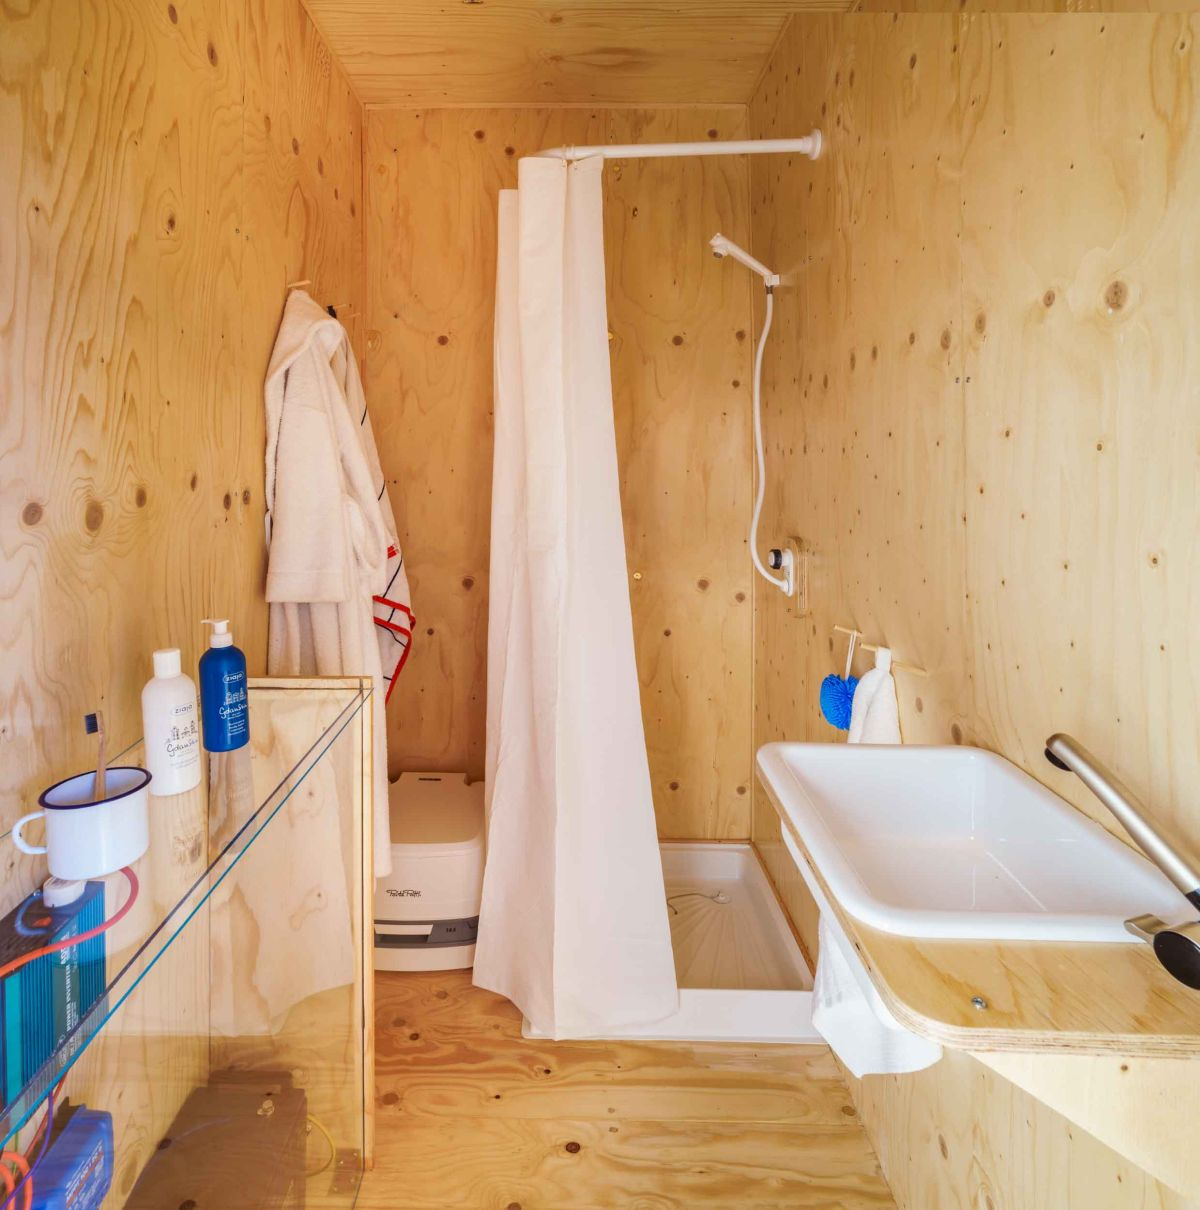 The bathroom is small but manages to include a shower, toilet, sink and a storage unit